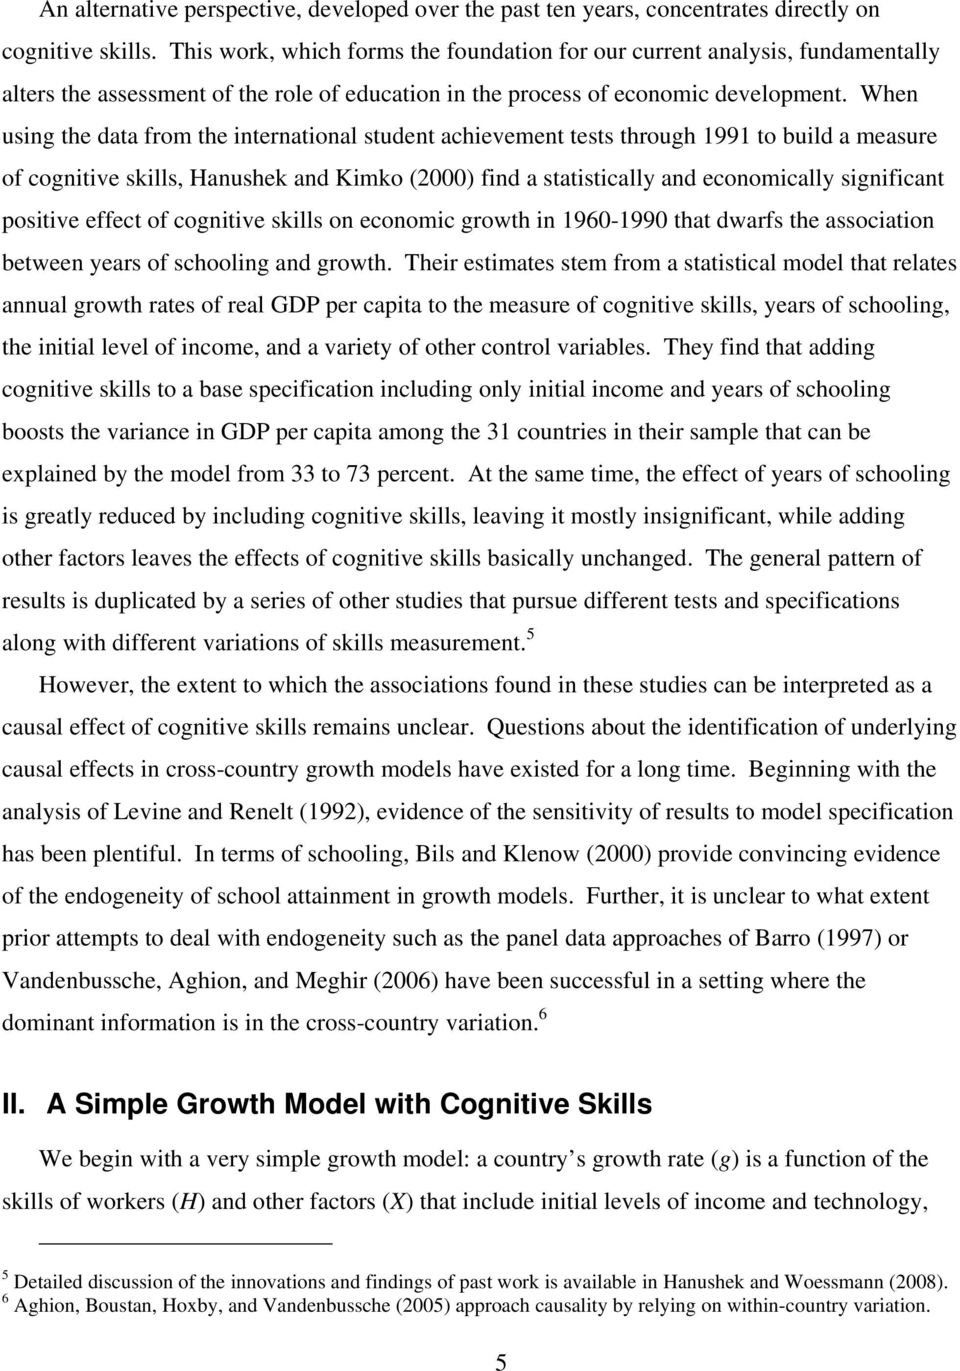 When using the data from the international student achievement tests through 1991 to build a measure of cognitive skills, Hanushek and Kimko (2000) find a statistically and economically significant